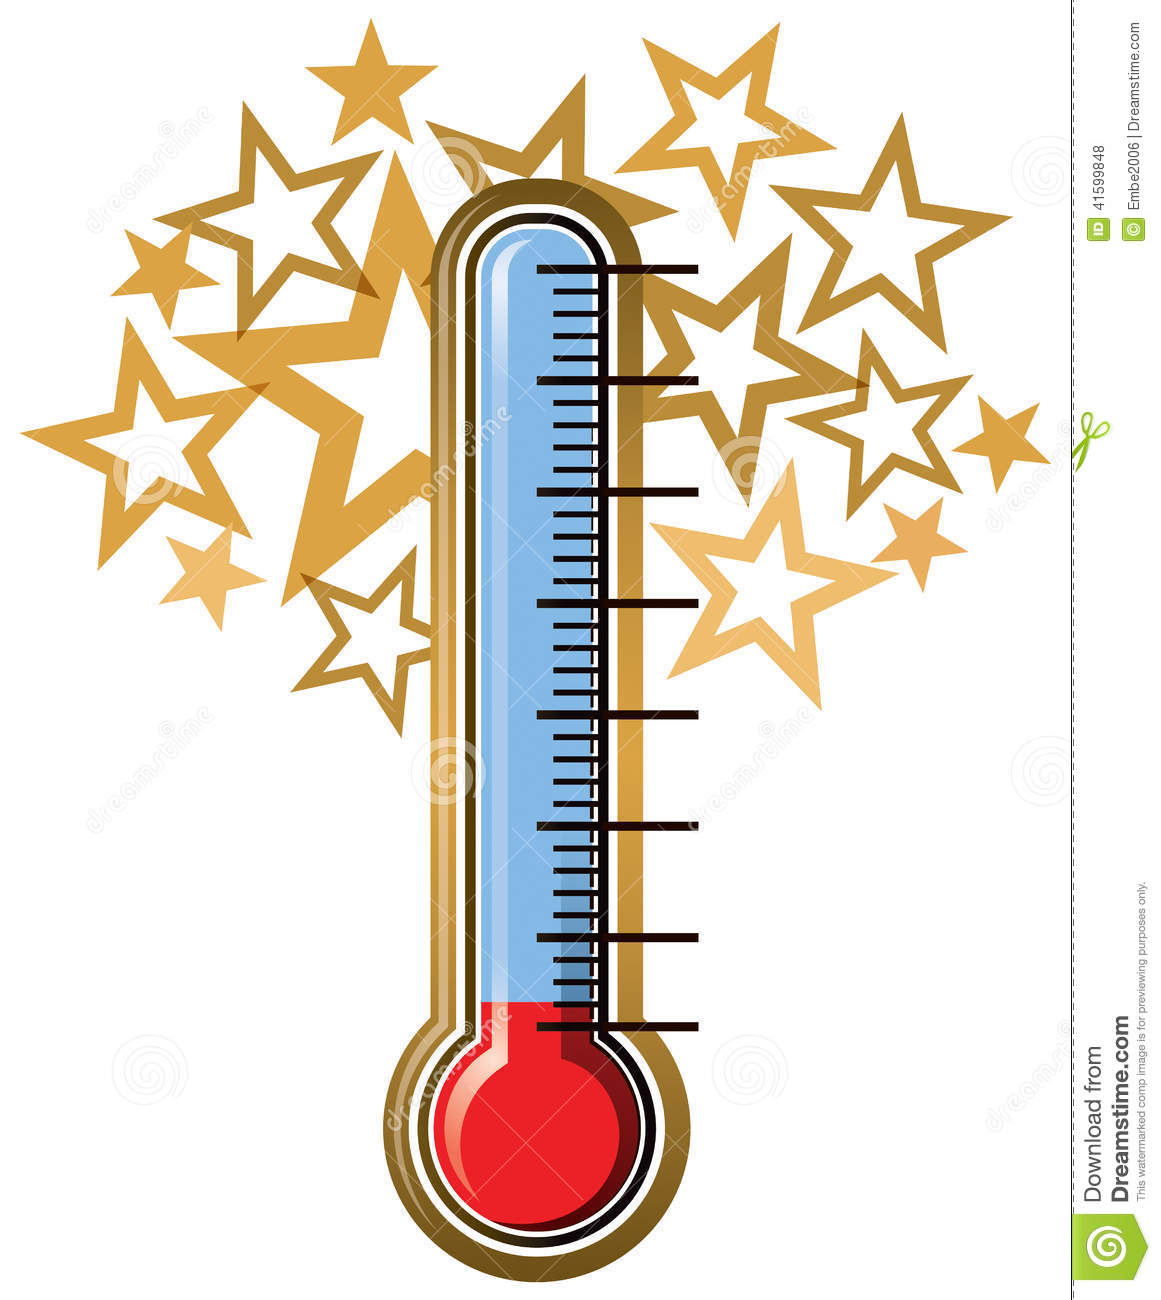 Thermometer Goal Stock Vector - Image: 41599848